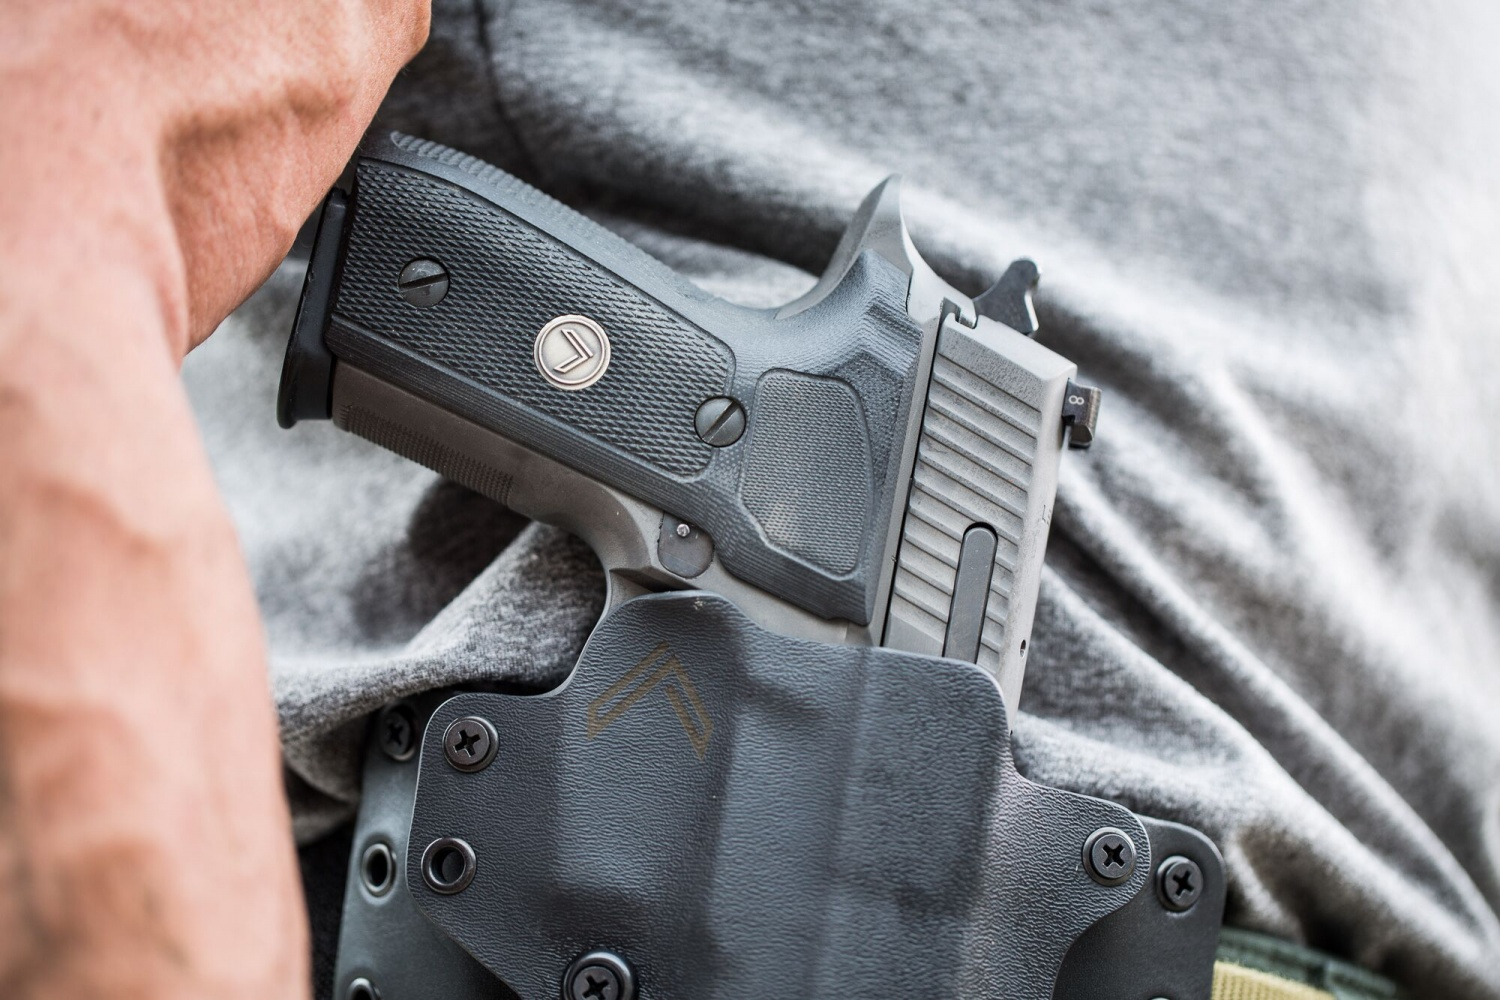 P-229 in the Black Point holster which sports the Legion logo.